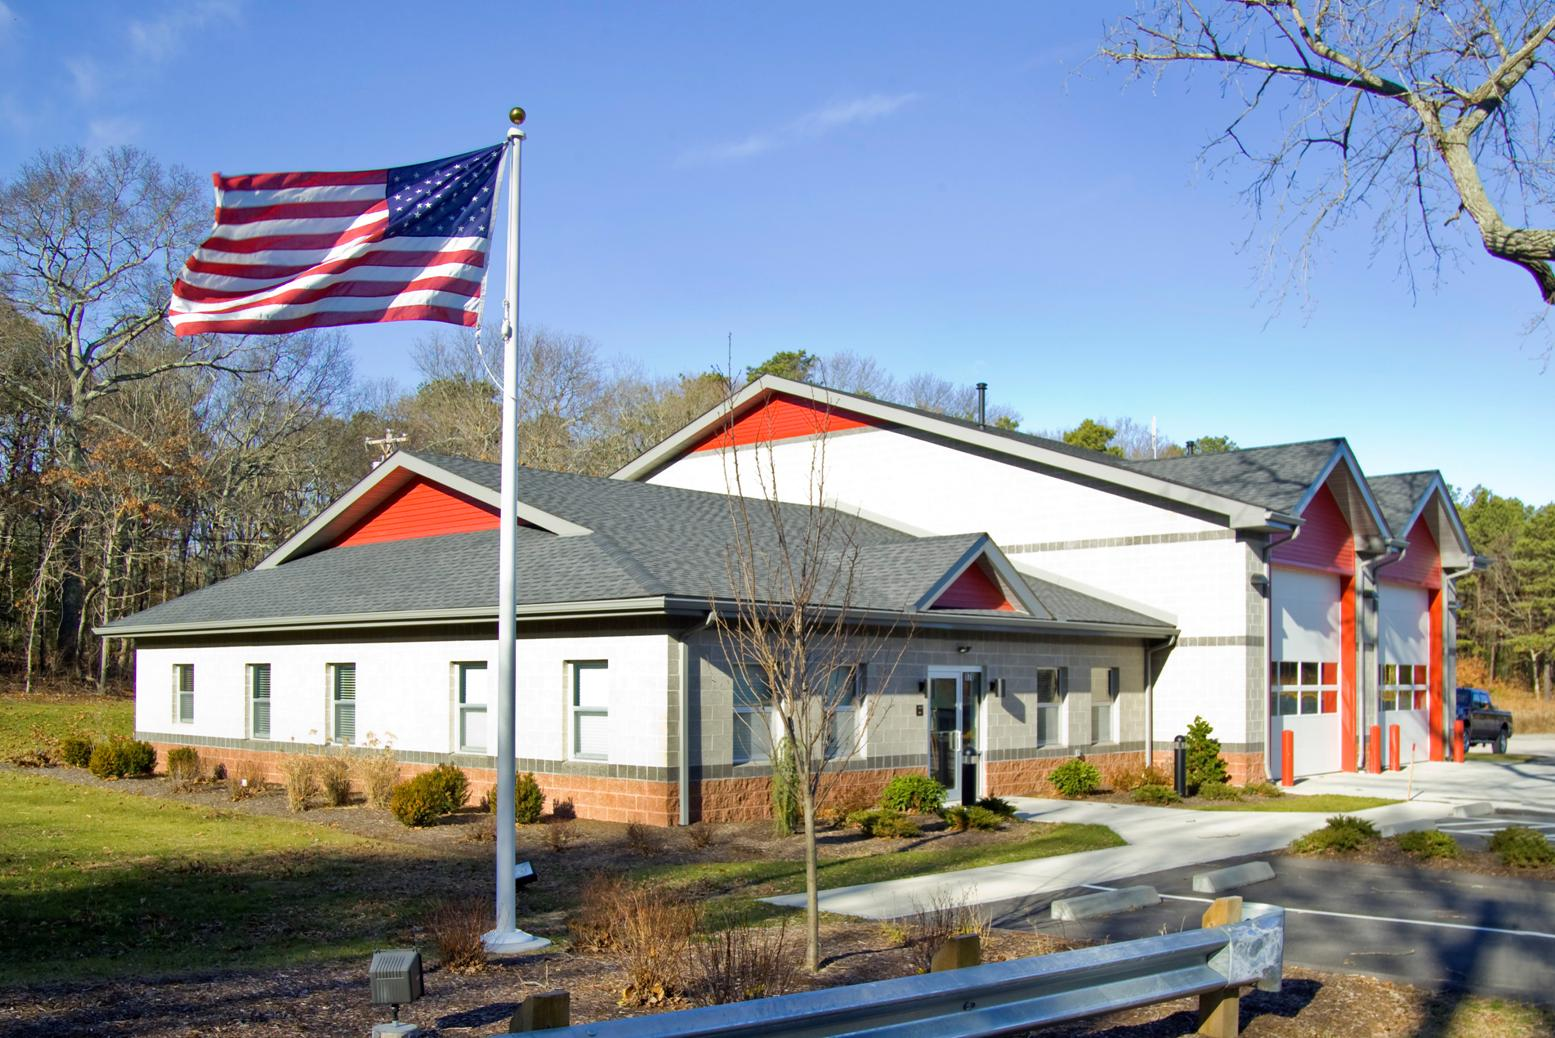 North Kingstown Fire Station #5